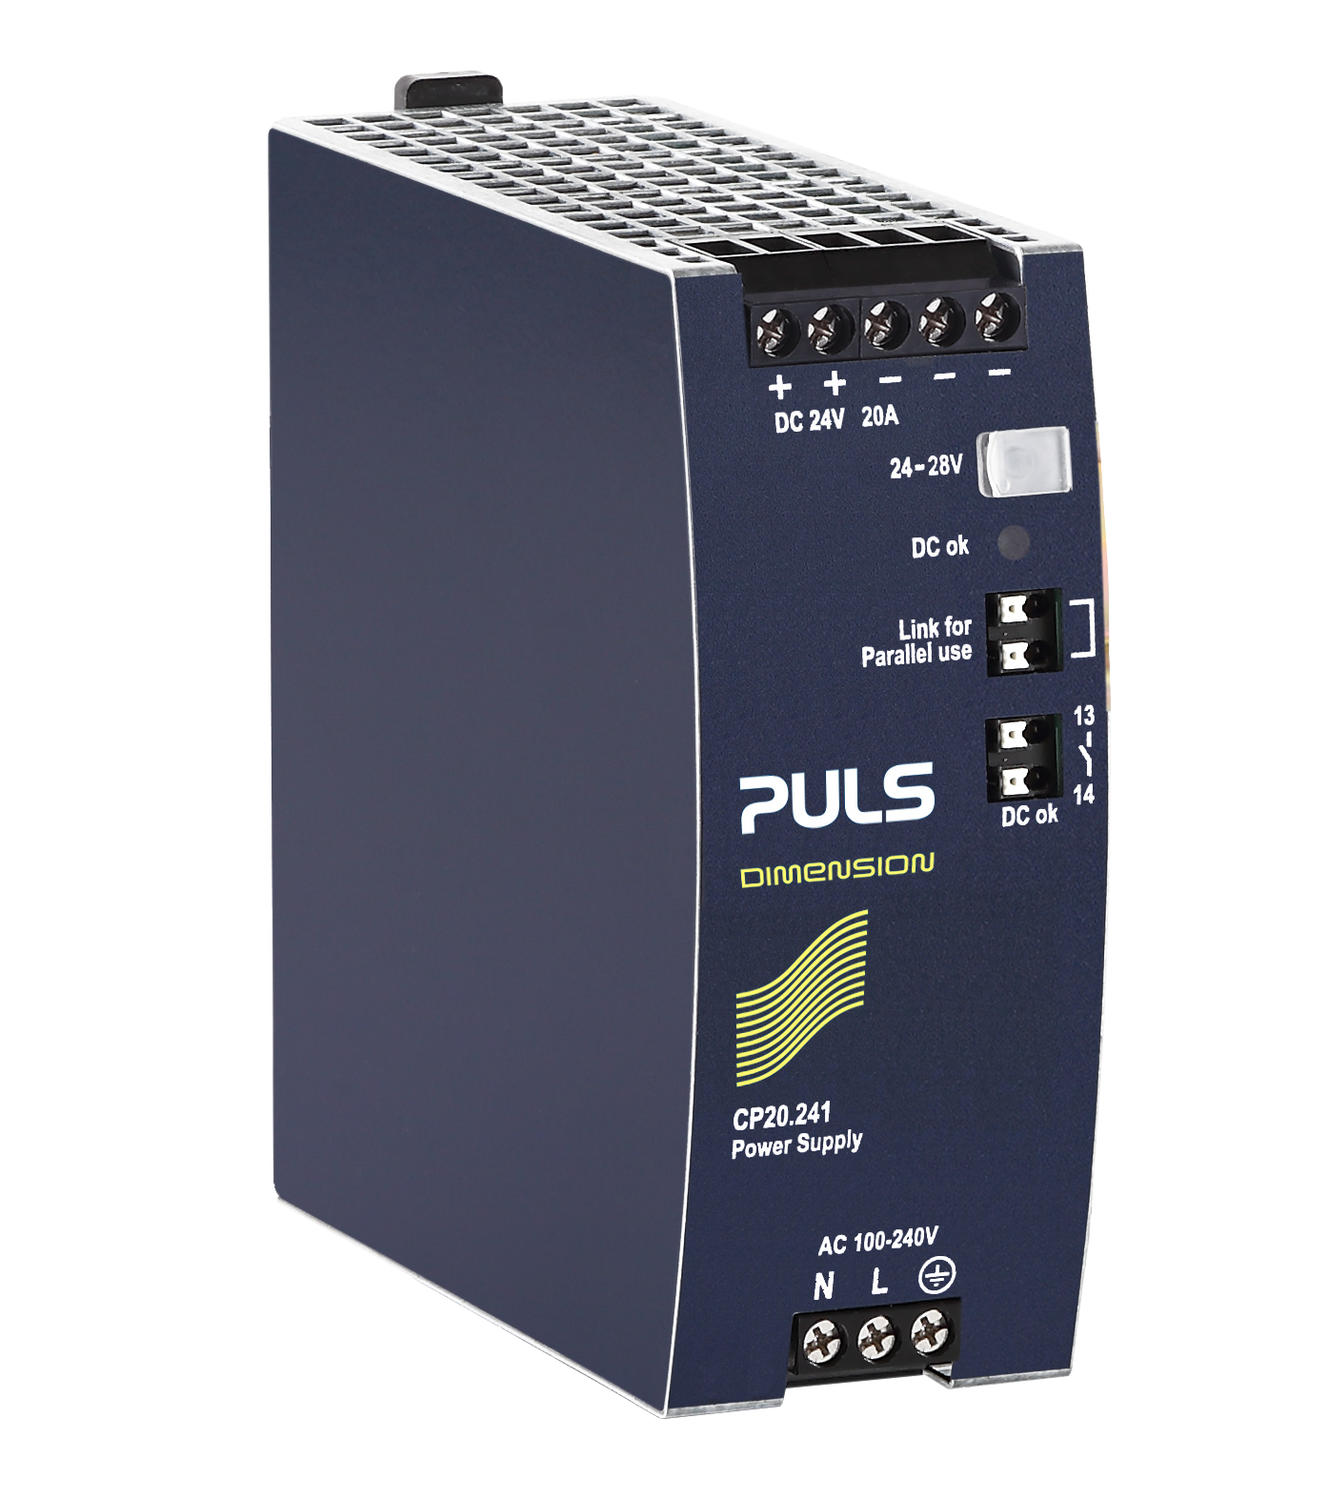 Power Supply 1-Phase, 24 V DC Dimension C Series, Generation 2